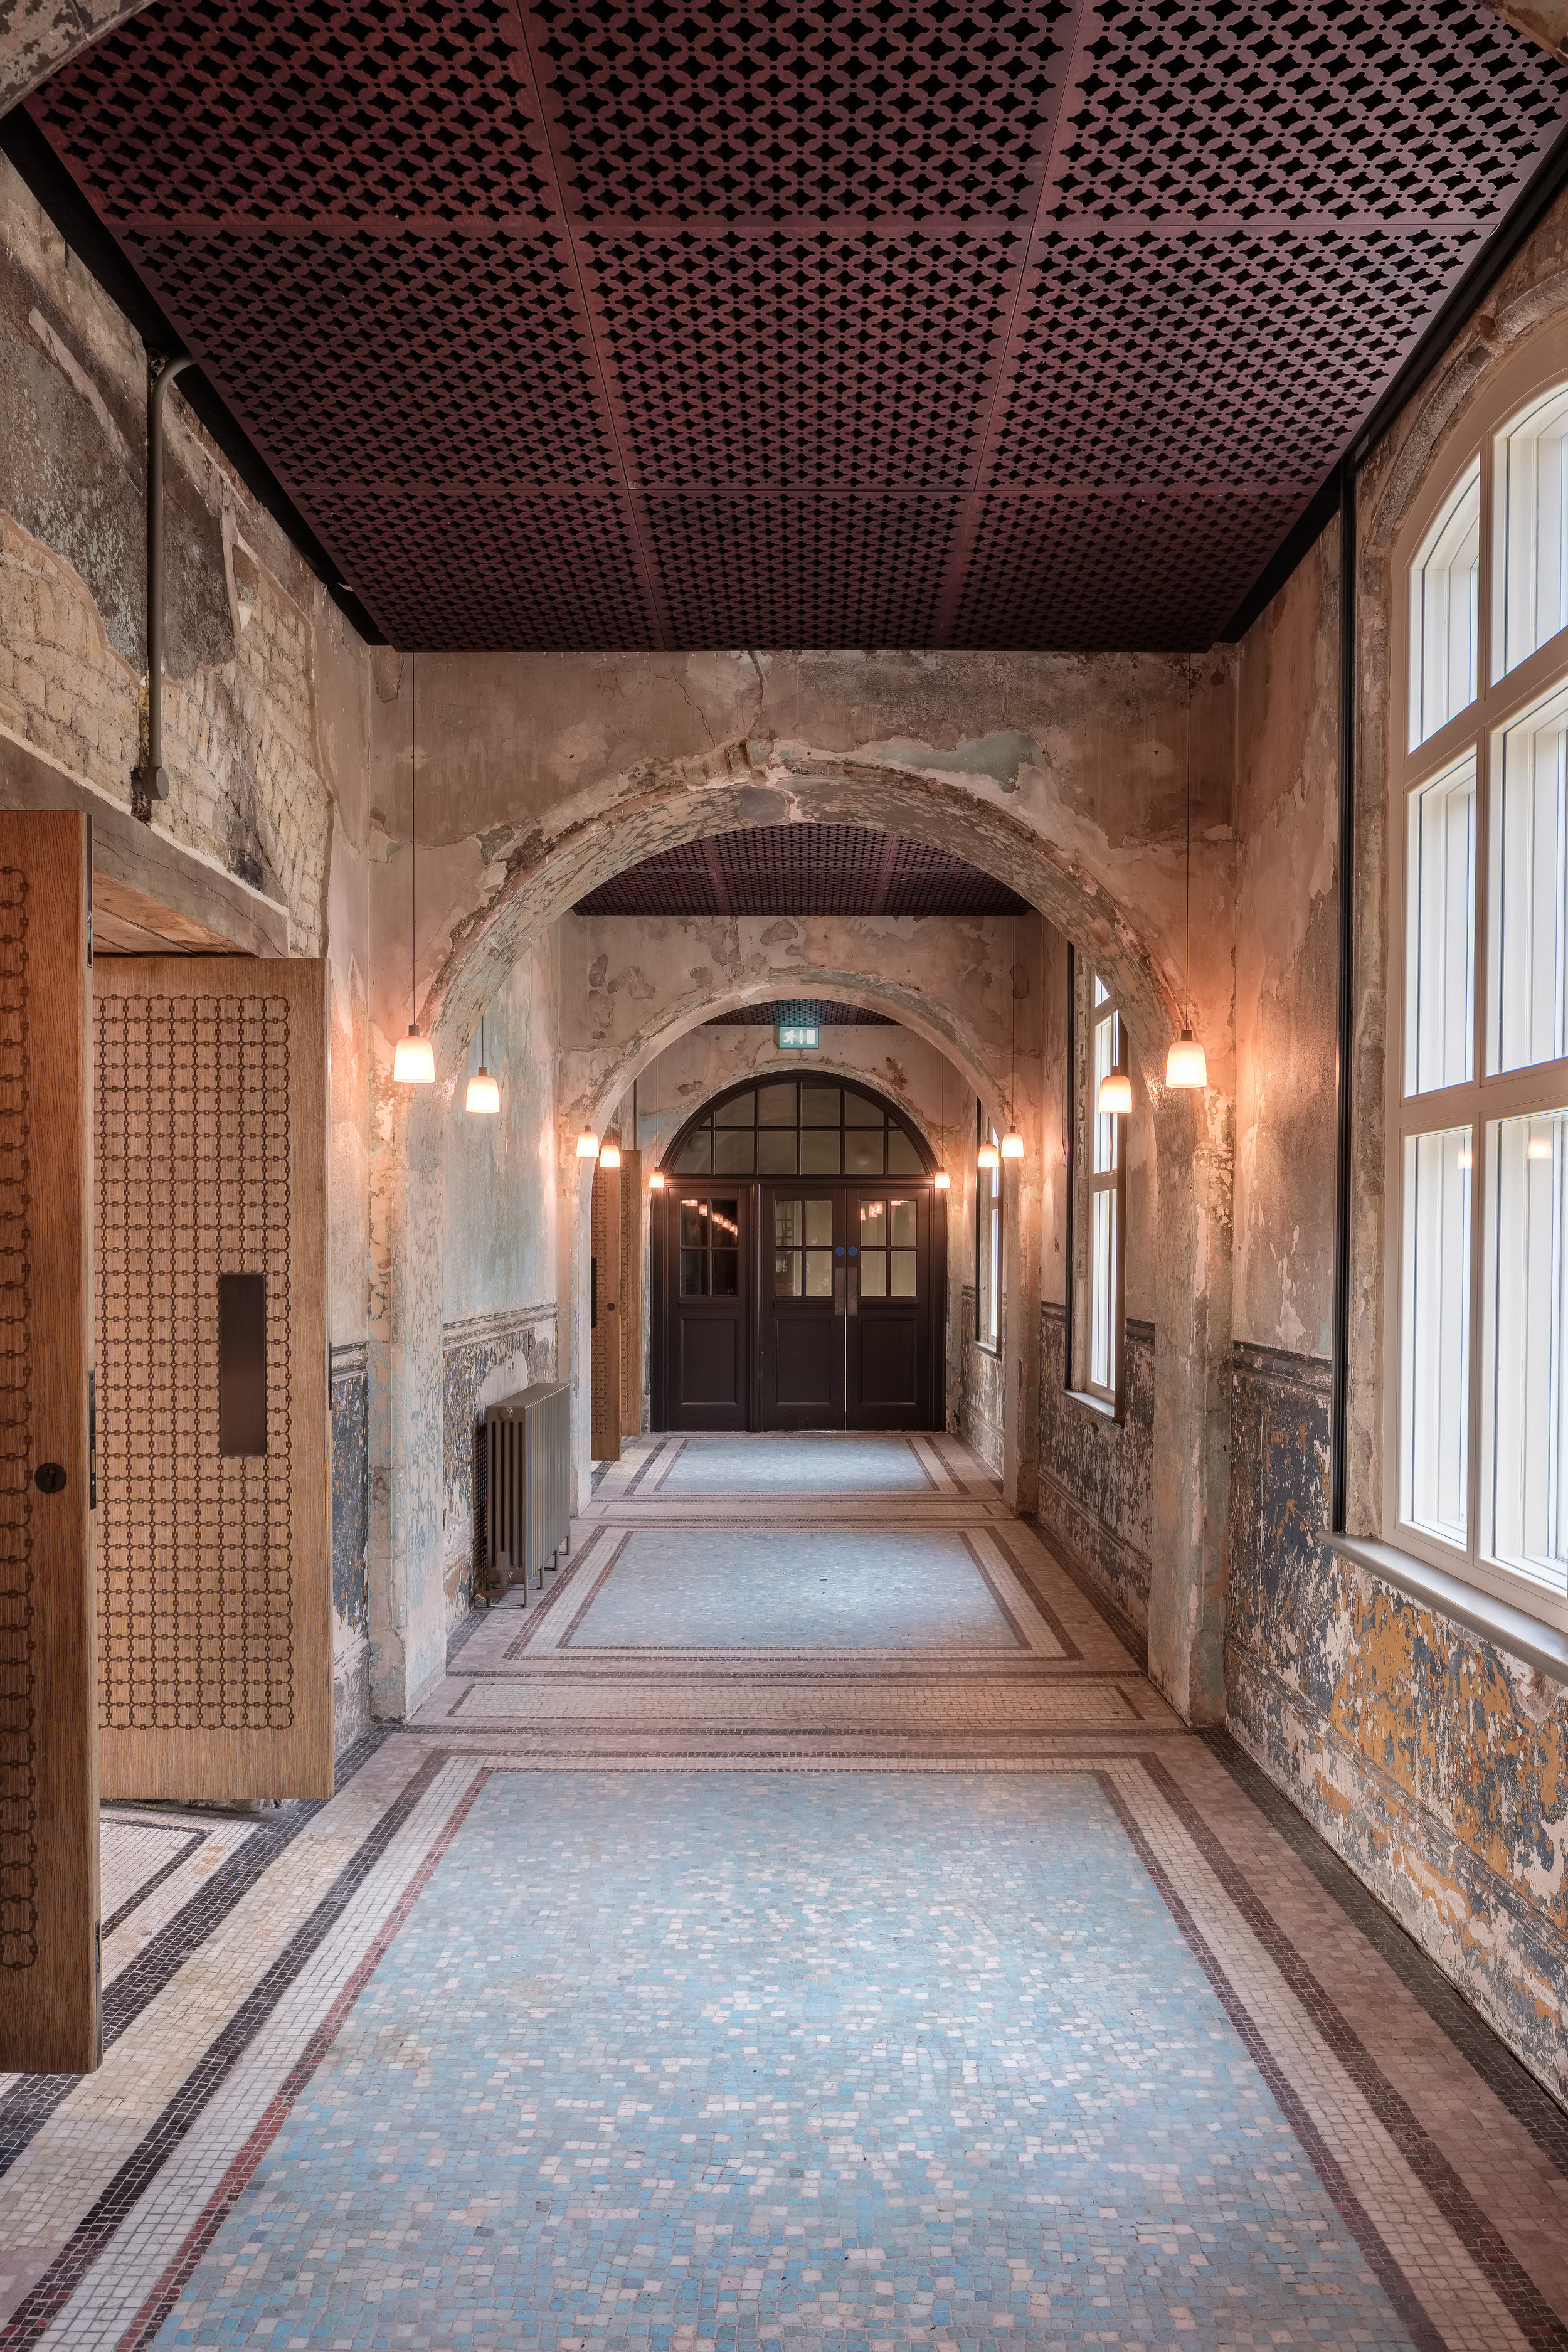 Fred+Howarth+Photography_Battersea+Arts+Centre_06.jpg